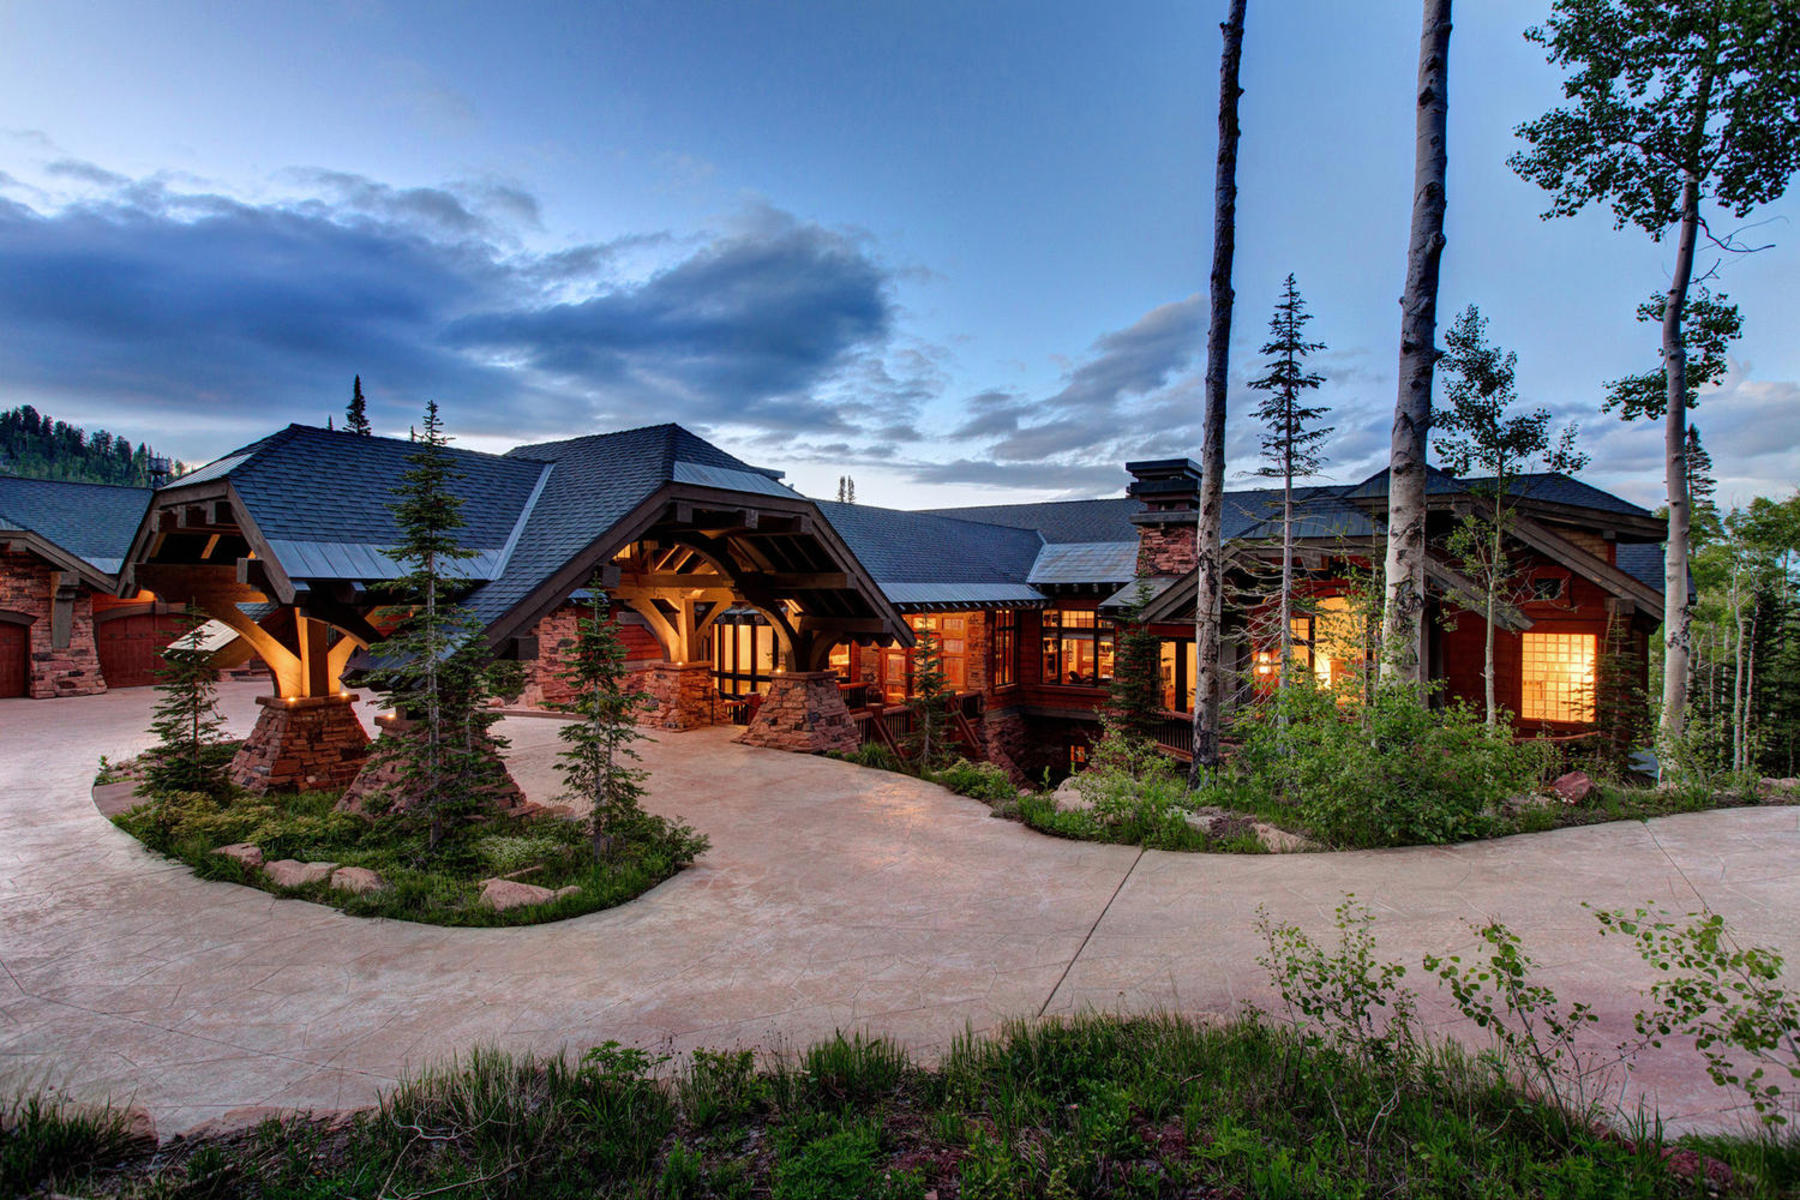 Single Family Home for Sale at A View from the Top 141 White Pine Canyon Rd Park City, Utah 84098 United States